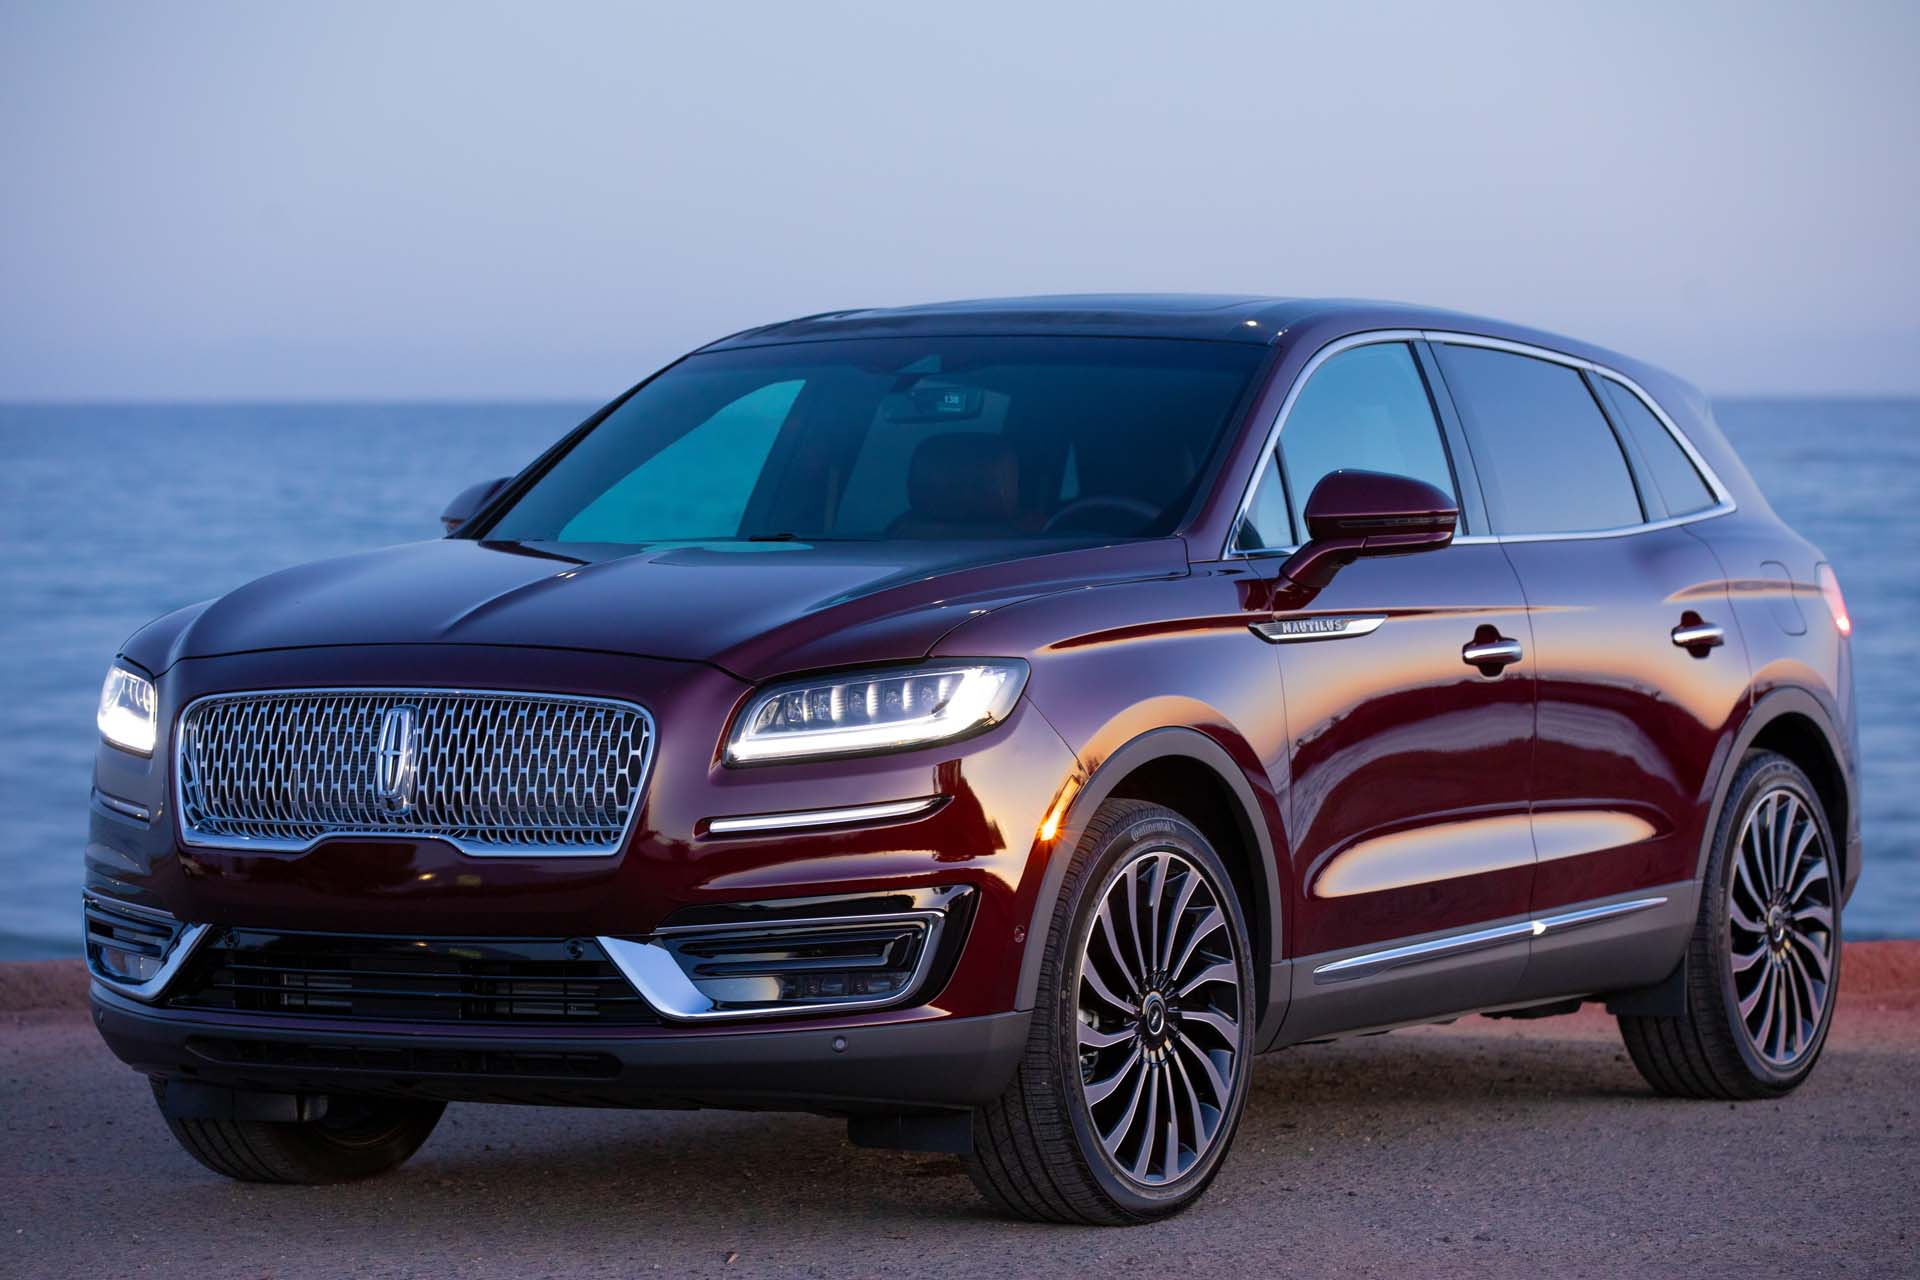 2020 Lincoln Nautilus Review, Price, Colors >> 2019 Lincoln Nautilus First Drive Review Deep Dive Into Crossover